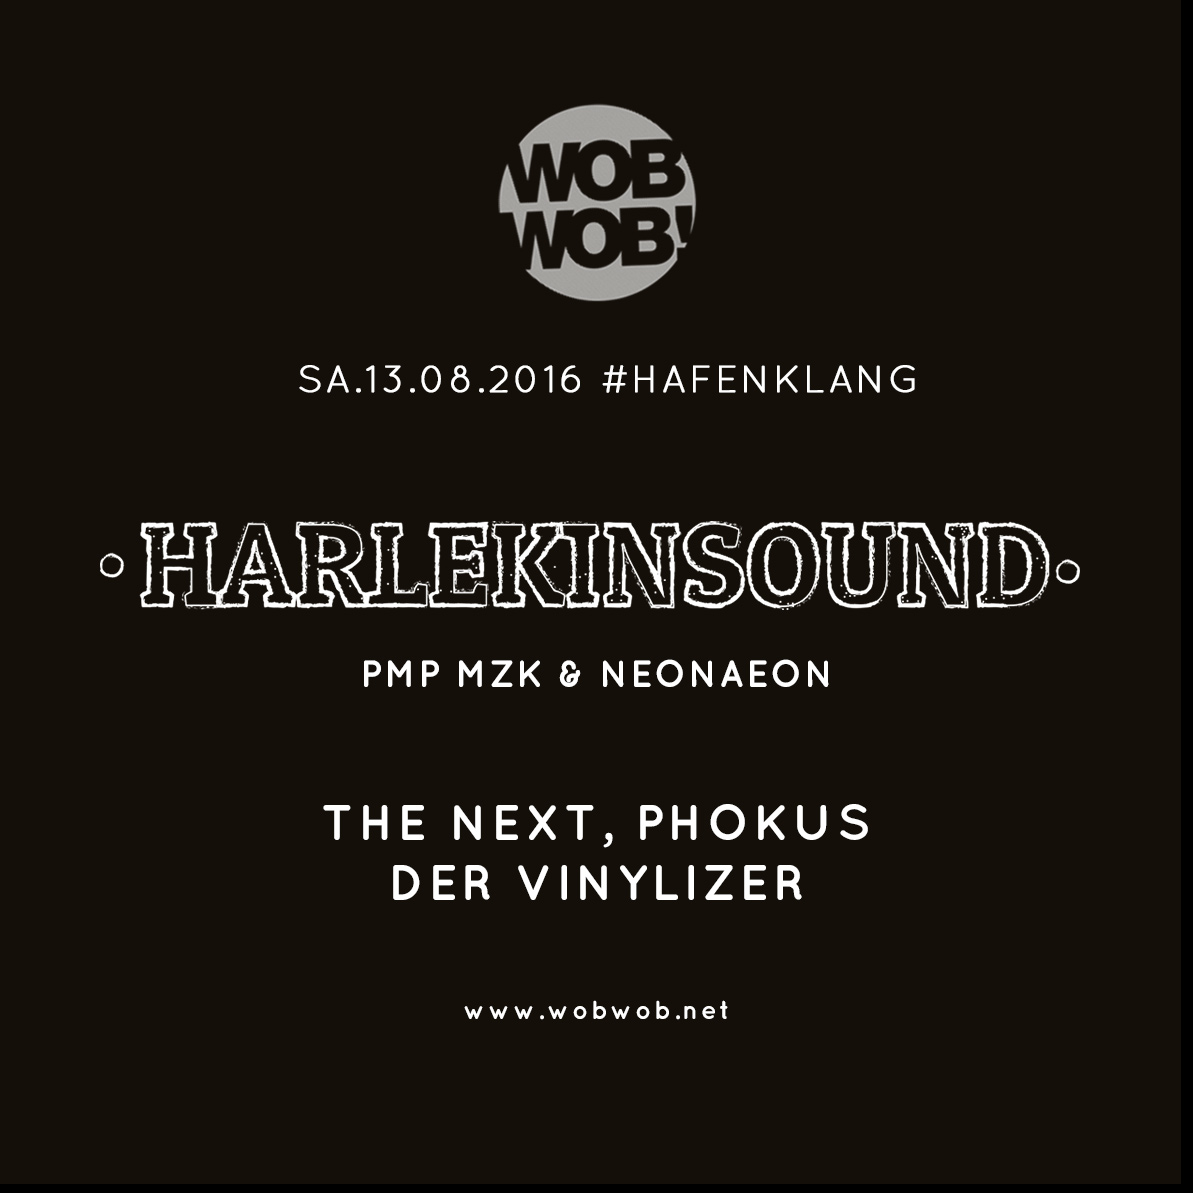 WobWob! presents: Infra \ harlekinsound